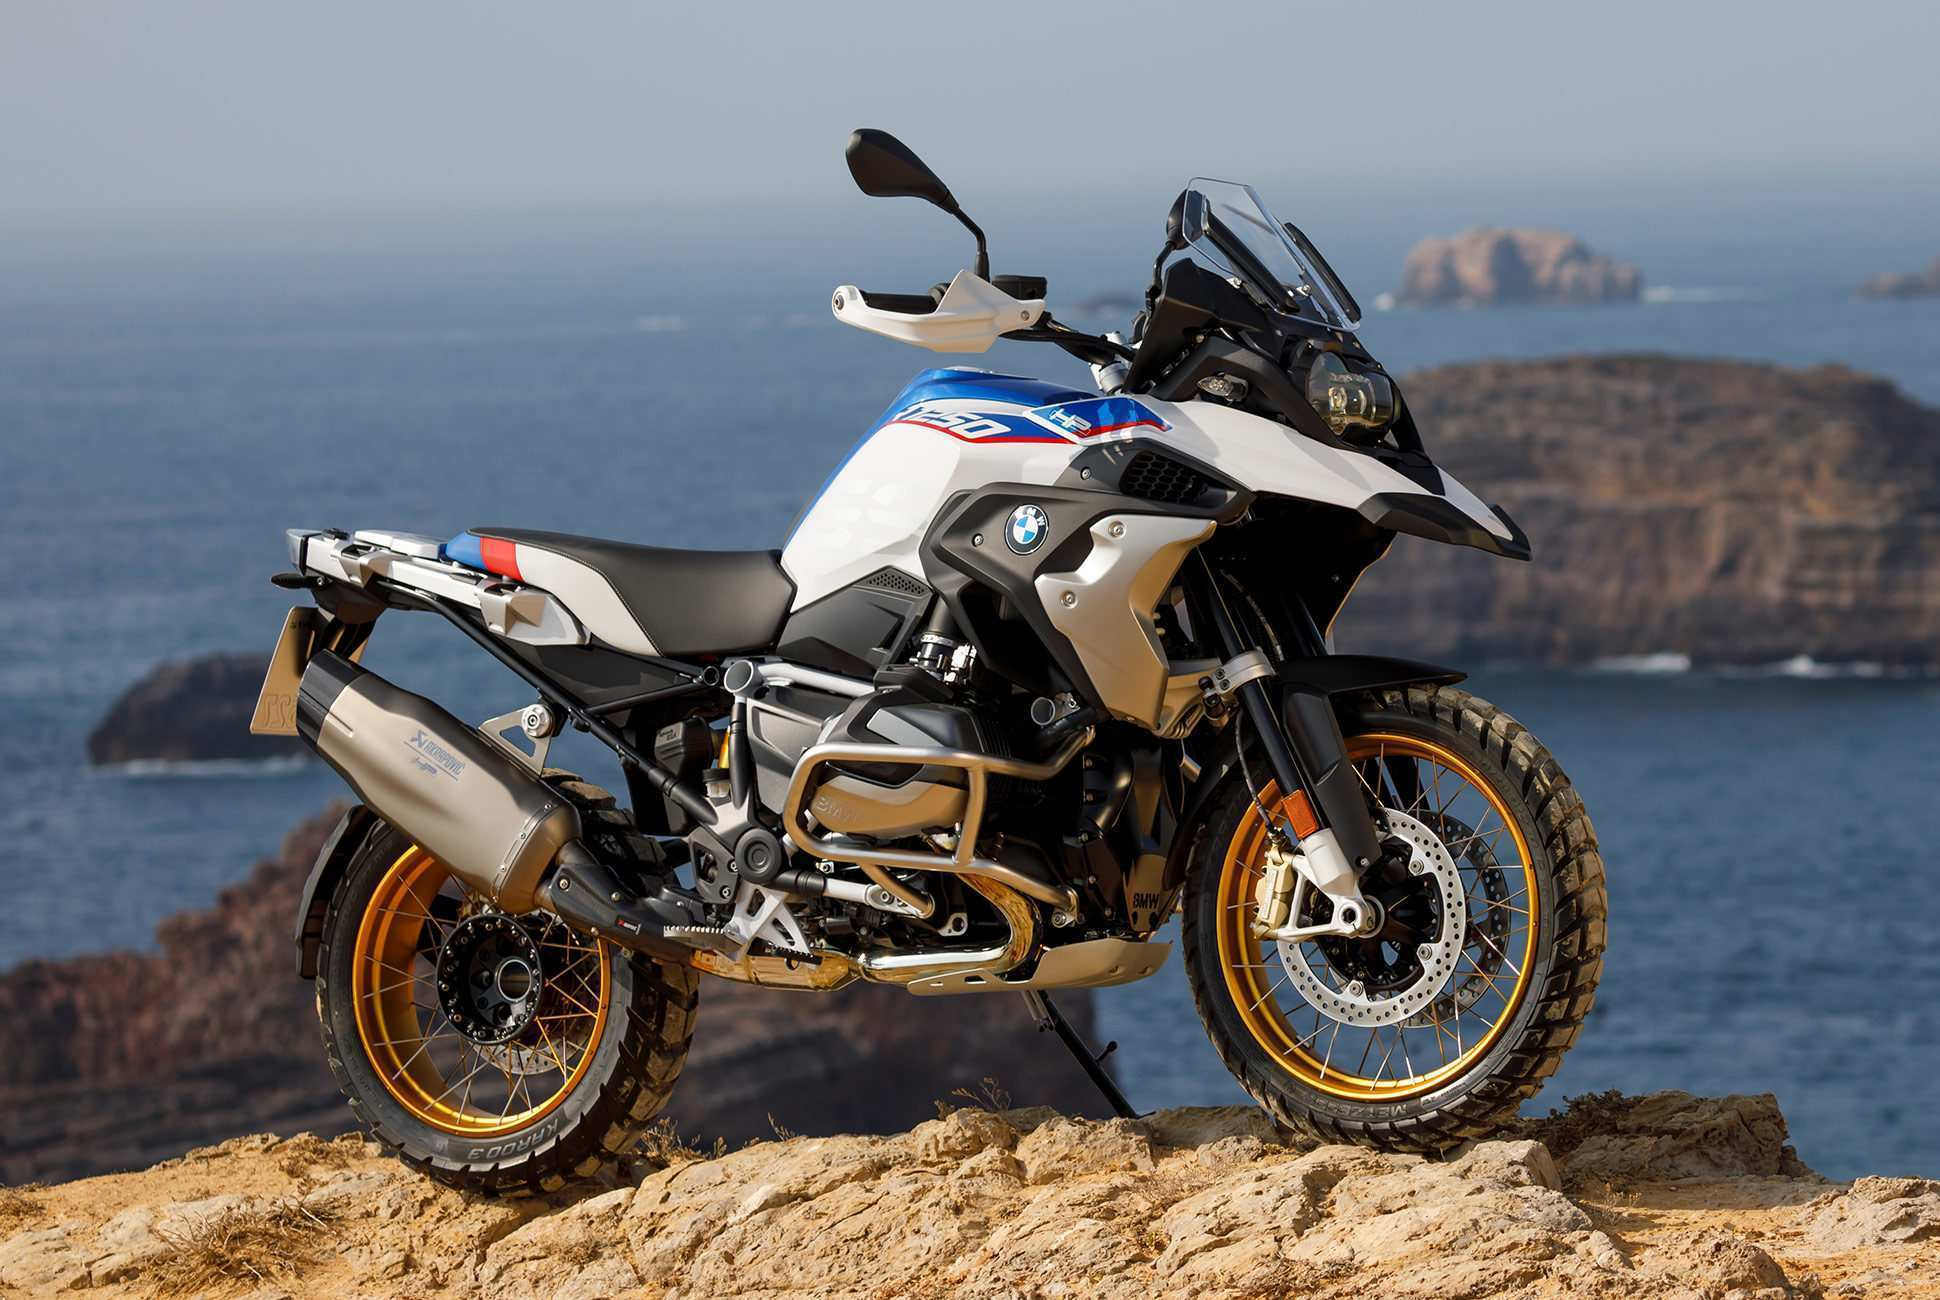 68 All New 2020 Bmw Gs Price and Review for 2020 Bmw Gs